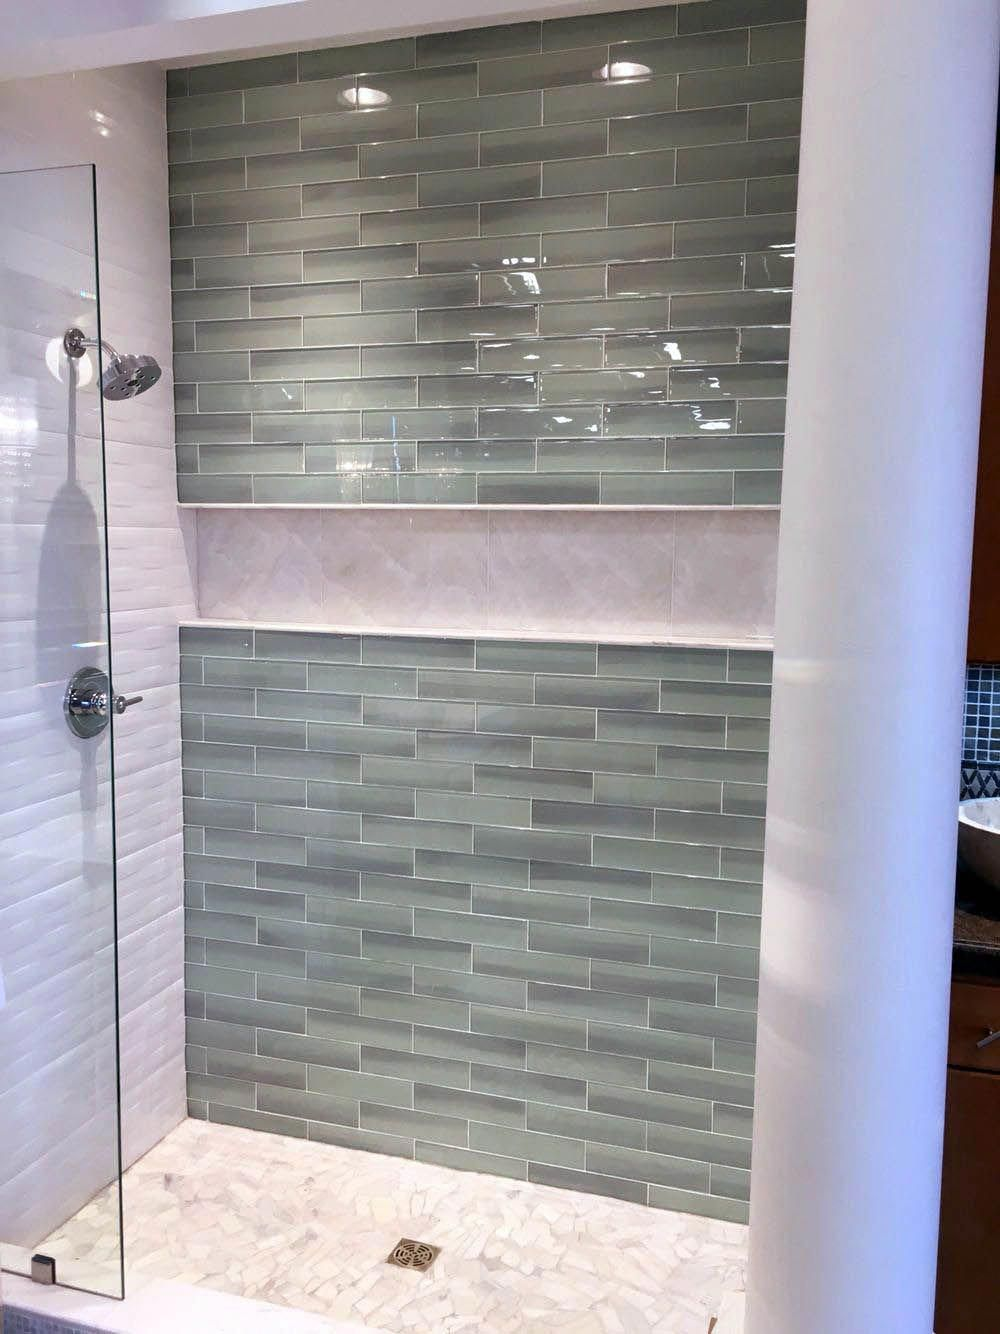 Bathroom Tile Ideas It Is Important To Have A Comfortable And Hygiene Bathroom At Home Yo In 2020 Guest Bathroom Remodel Bathroom Tub Shower Bathroom Remodel Shower